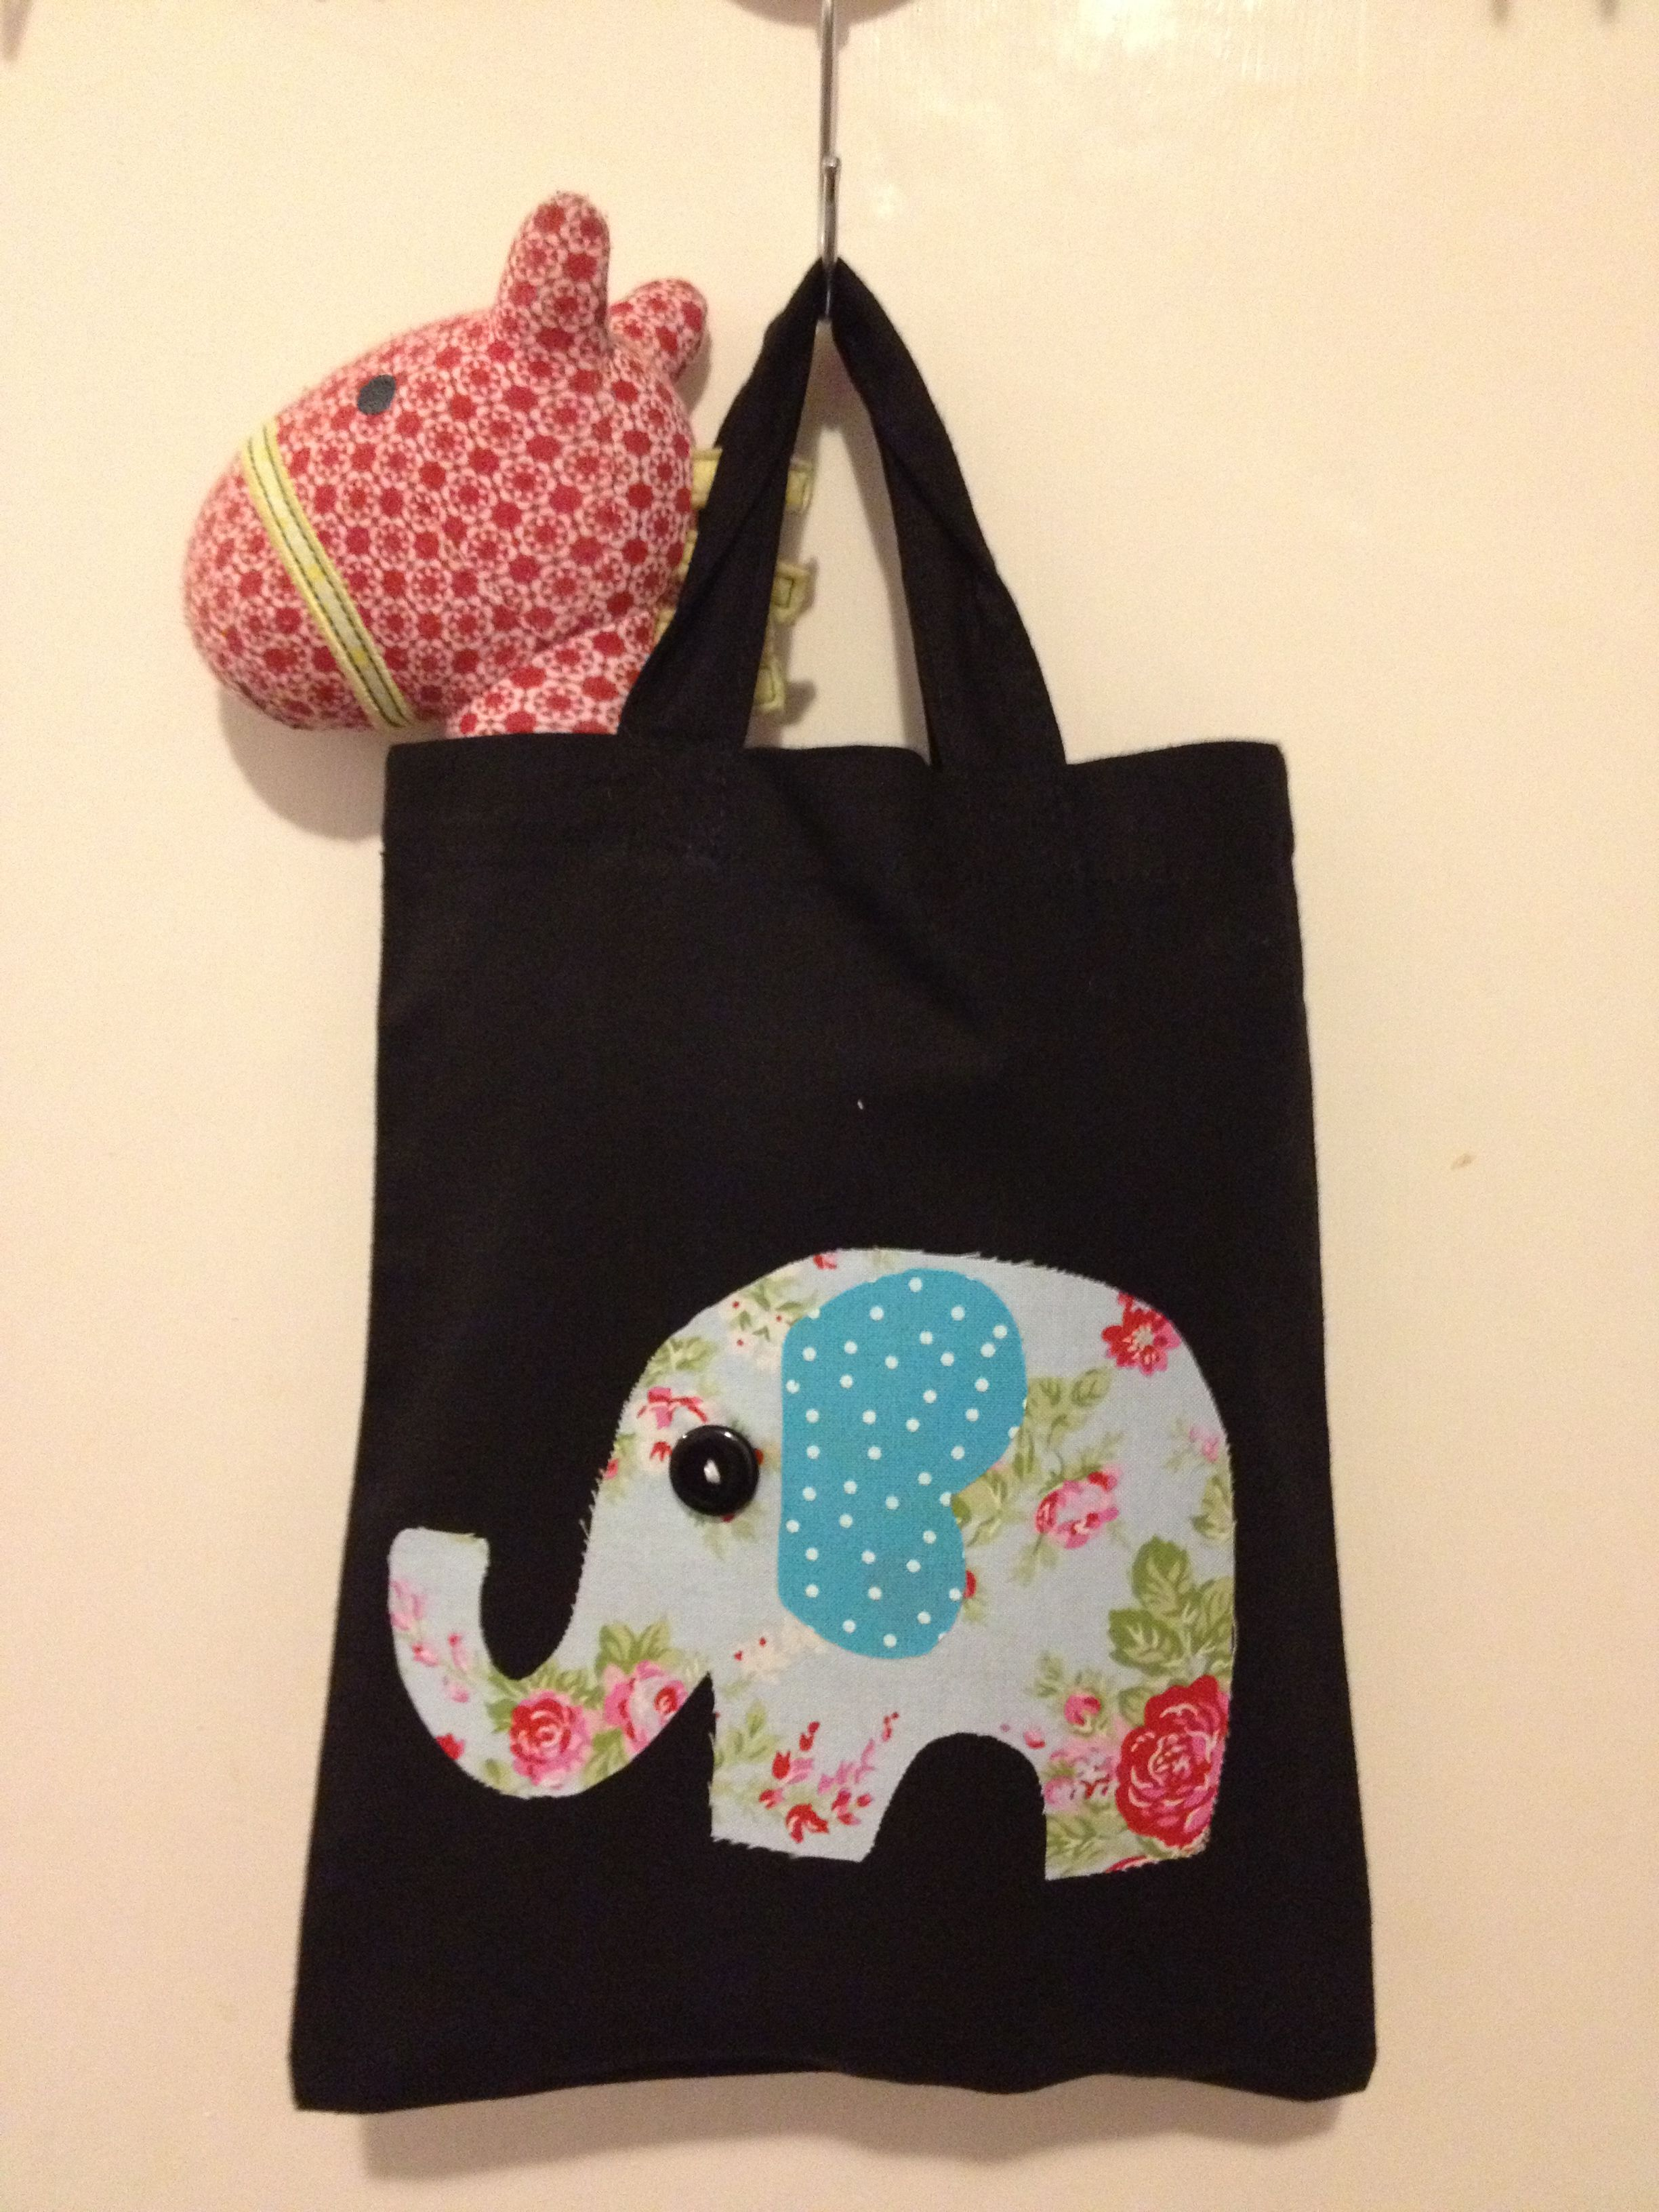 Handmade Ellie bag